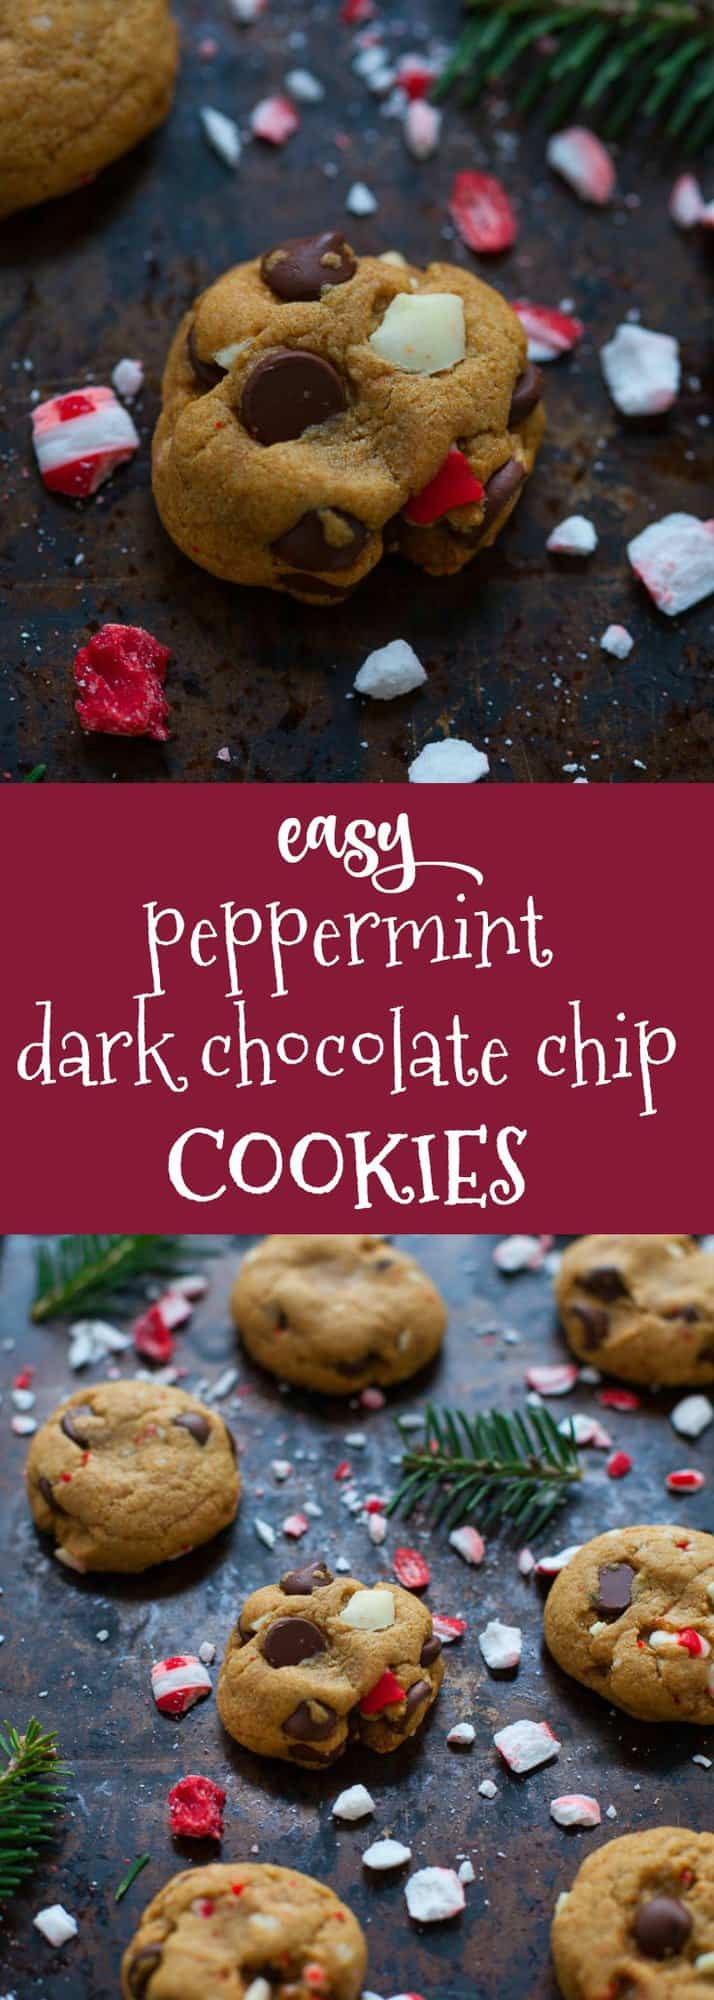 Delicious treats for the holidays! These easy peppermint dark chocolate chip cookies are made with whole-wheat flour and are perfectly festive for a holiday cookie swap!